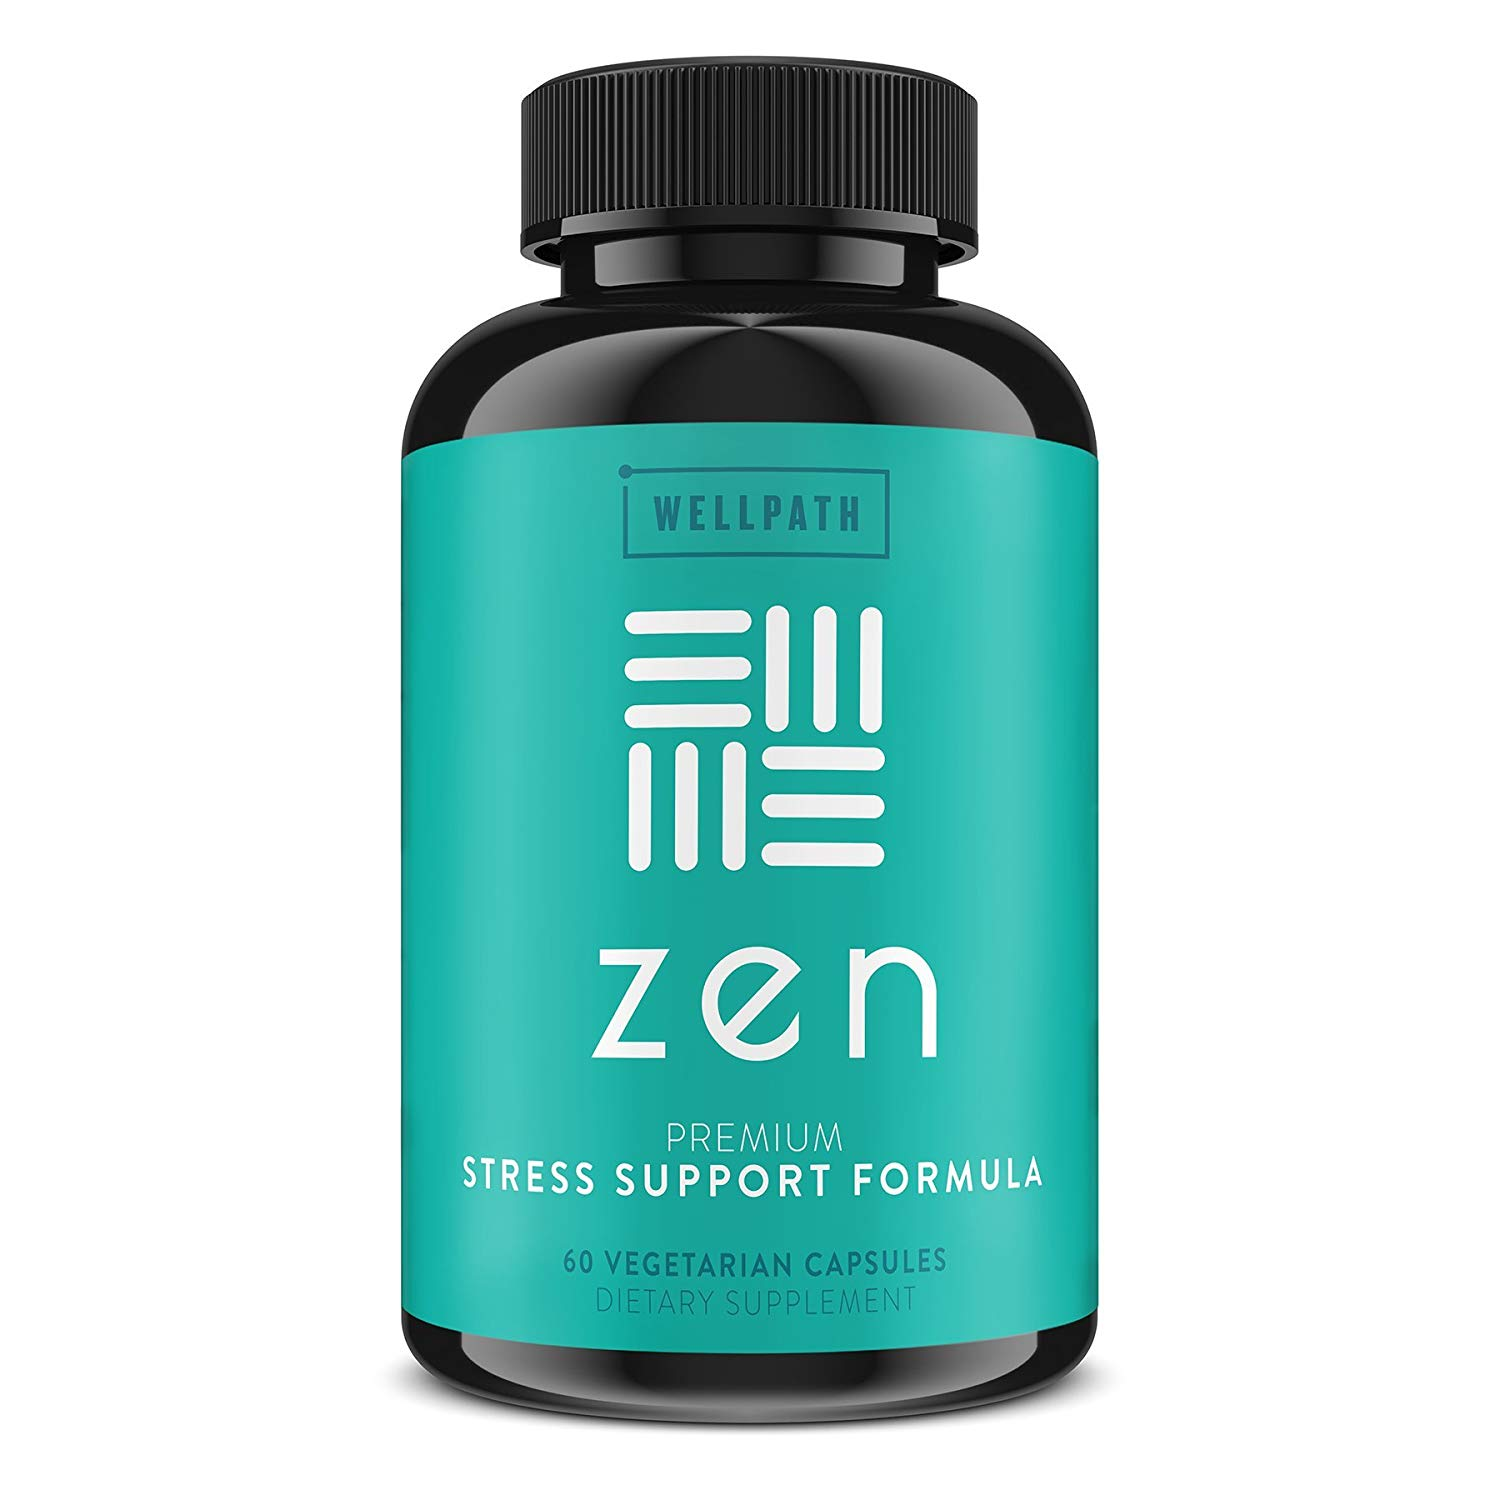 Review of - Zen Premium Anxiety and Stress Relief Supplement - Natural Herbal Formula Developed to Promote Calm, Positive Mood - with Ashwagandha, L-Theanine, Rhodiola Rosea, Hawthorne - 60 Veg. Capsules